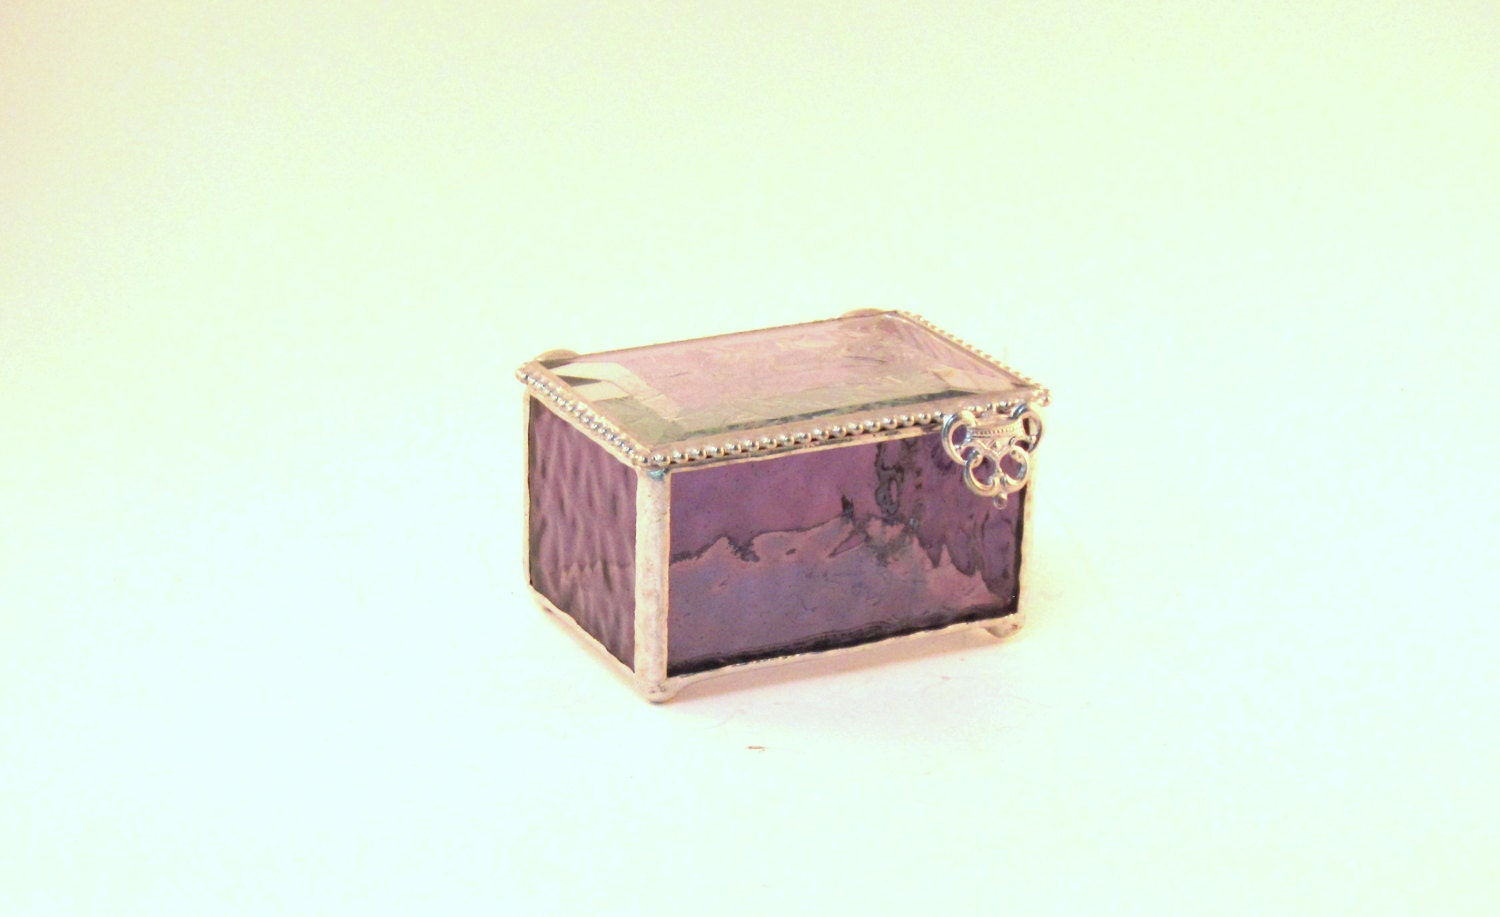 "Amethyst Purple Stained Glass Jewelry Box, Keepsake Box, 2 x 3"", Clear Bevel Lid, Bridesmaid Gift, Mother's Day Gift, Maid of Honor Gift - shopworksofglass"